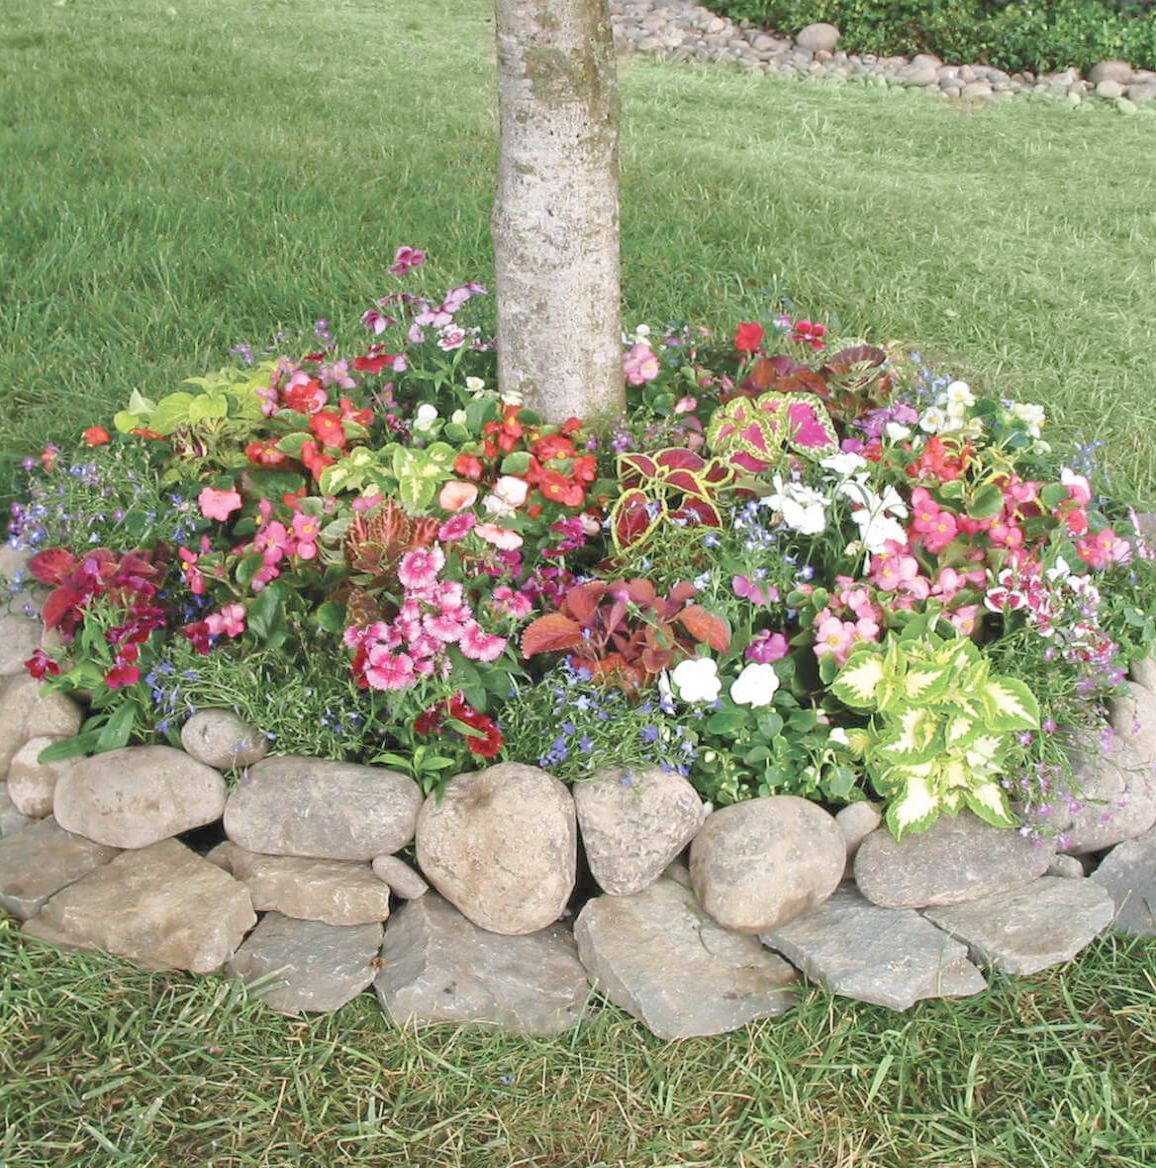 Gardening And Landscape Design Business Diploma Course Beyond Garden Landscaping Products Before Garden Landscape Design Soft Landscaping With Rocks Backyard Landscaping Garden Design